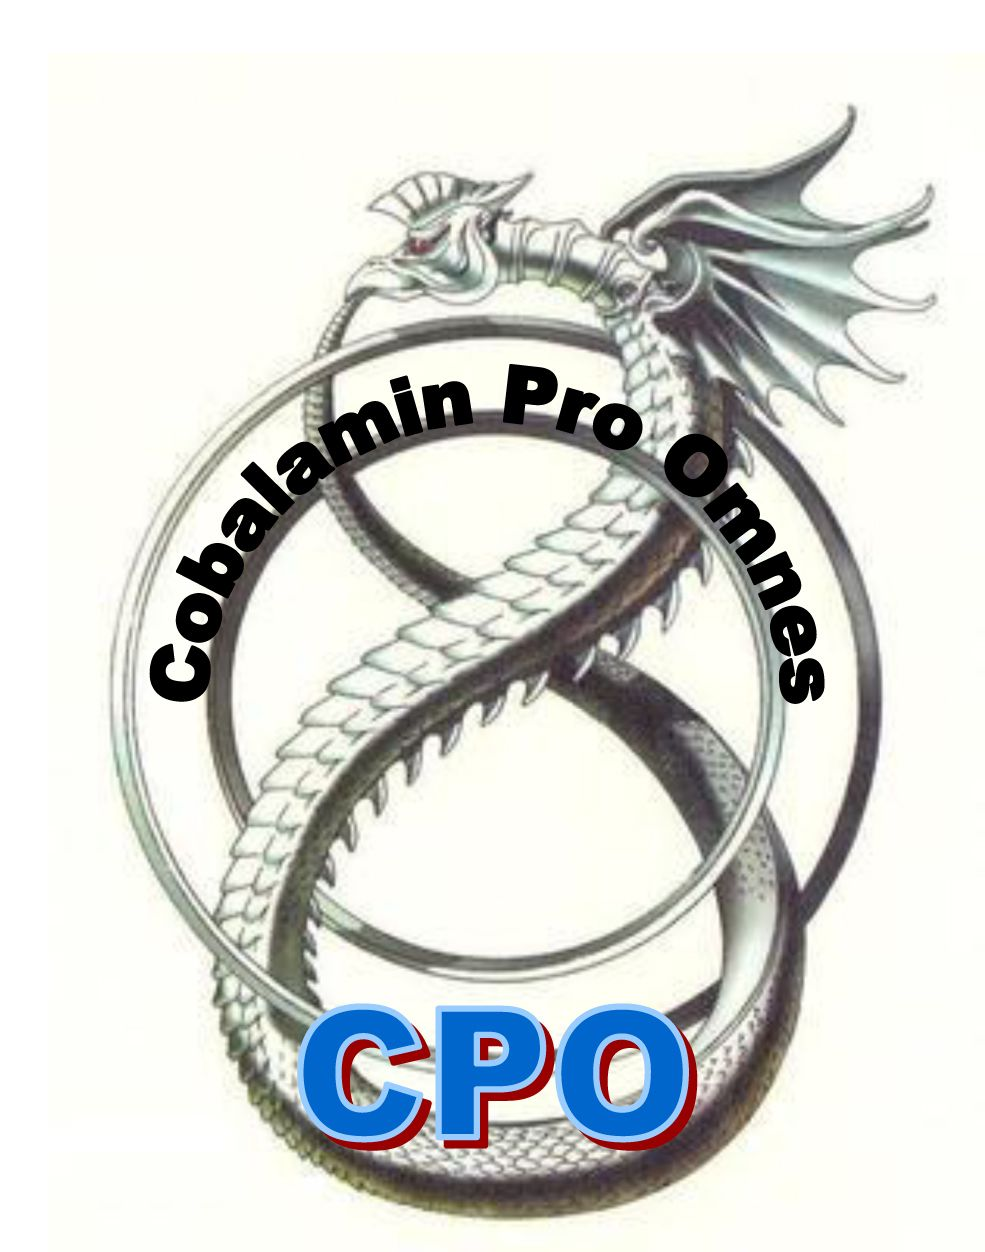 CPO Logo: Cobalamin Pro Omnes. 10-20% of all people has a vitamin B12 Deficiency. Everybody with chronic complaints is a B12 suspect. When the diagnosis stands: there is a much better treatment than the usual one. Cobalamin Pro Omnes: The right B12 (Methyl- and Adenosylcobalamin) for everybody!!